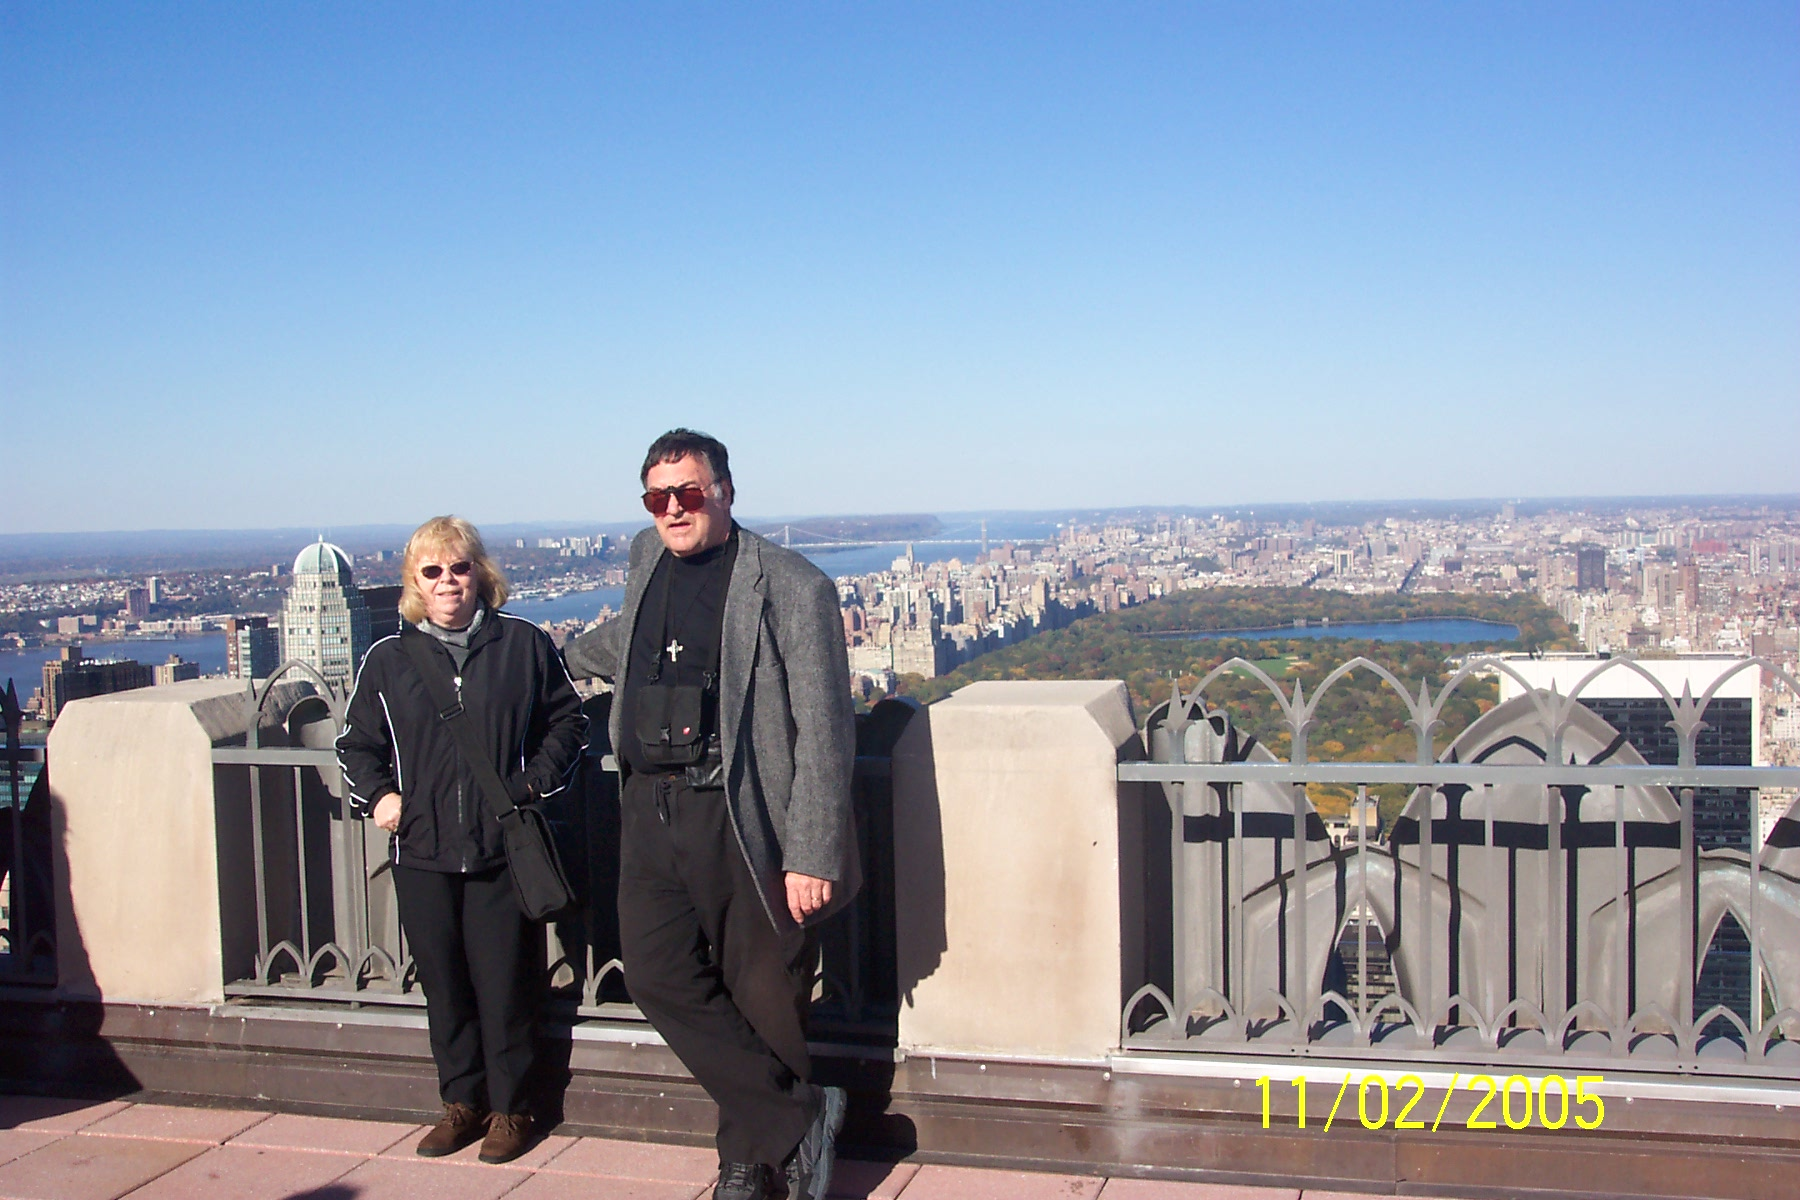 Judy and David Beine, overlooking Central Park